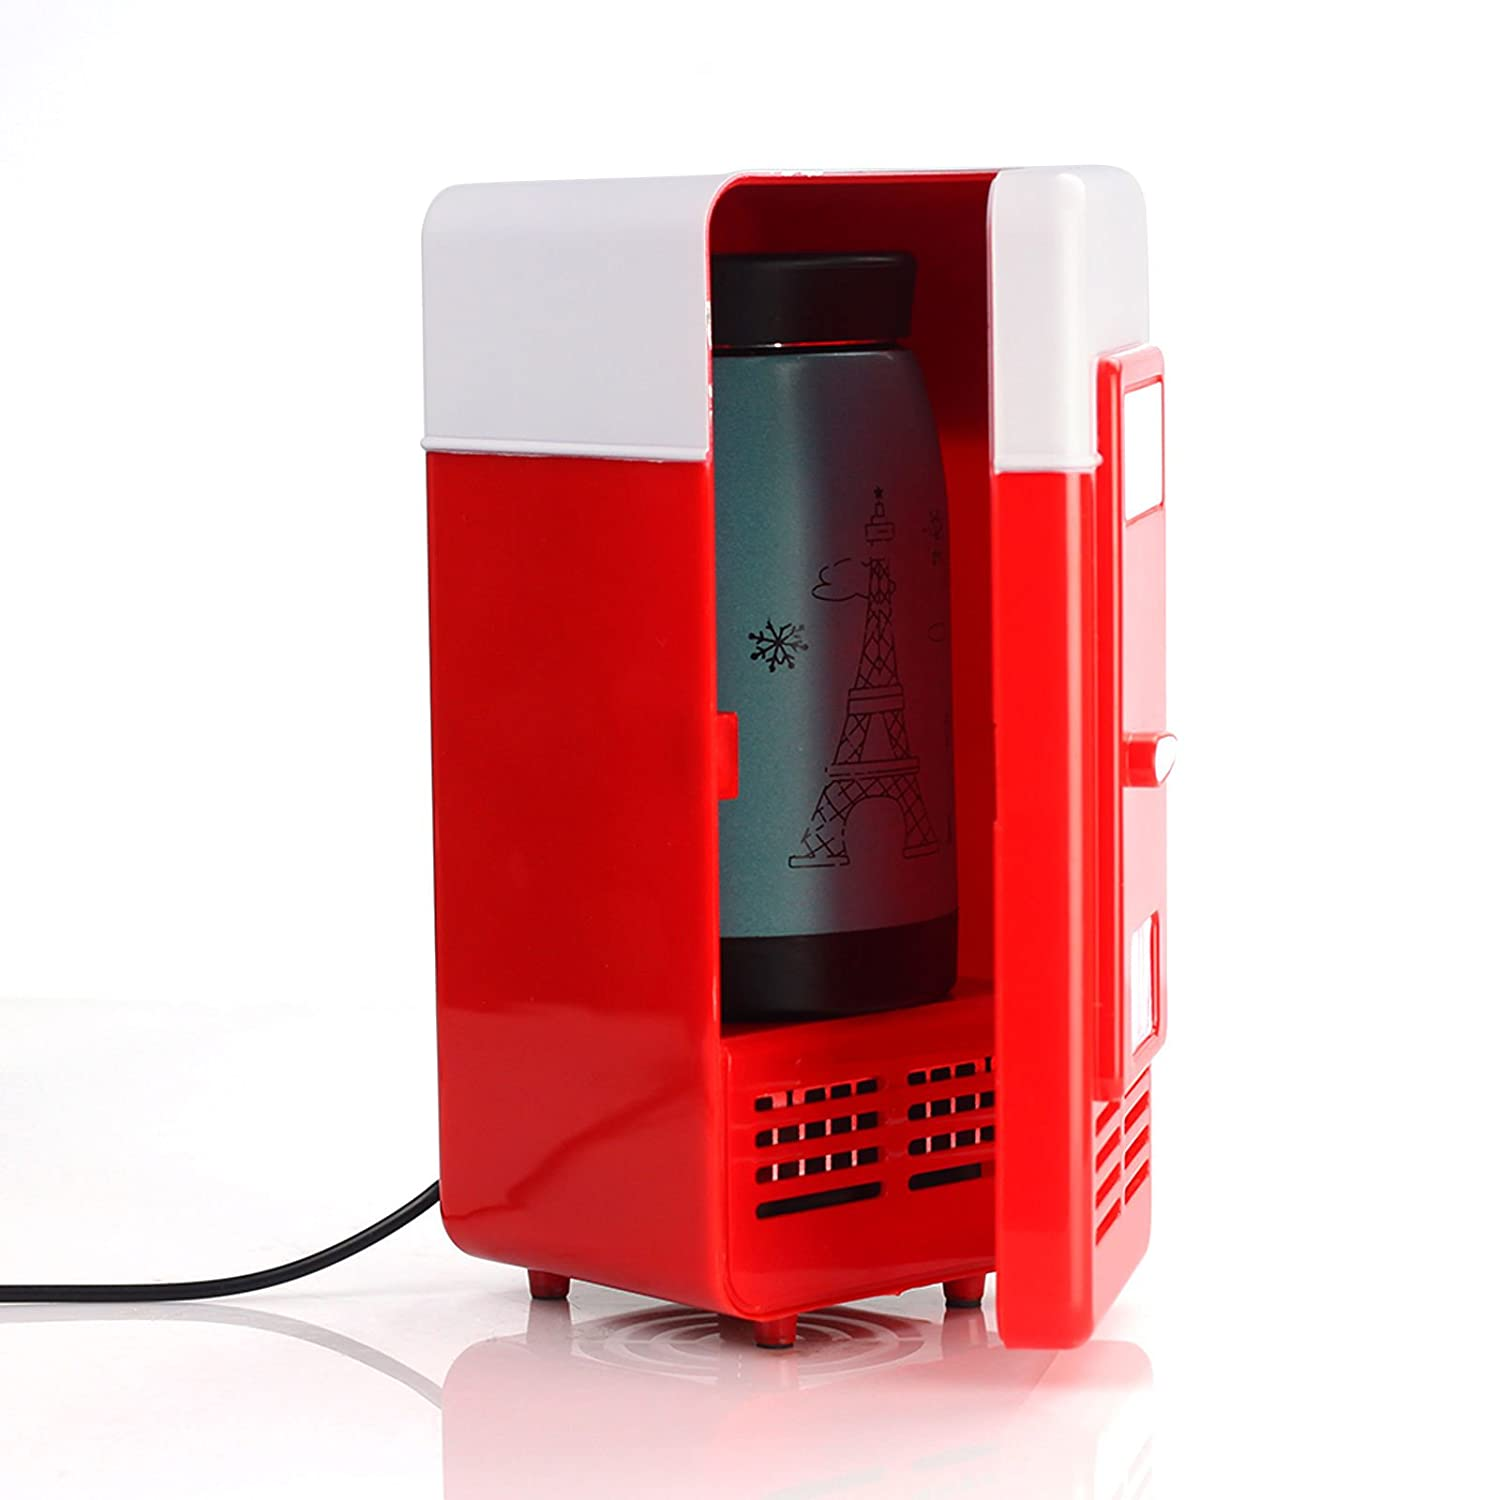 Lychee 5V USB Power Operated Portable Mini Fridge With Cooling and Heat Function,Cool Refrigerator For Office Desktop PC Car